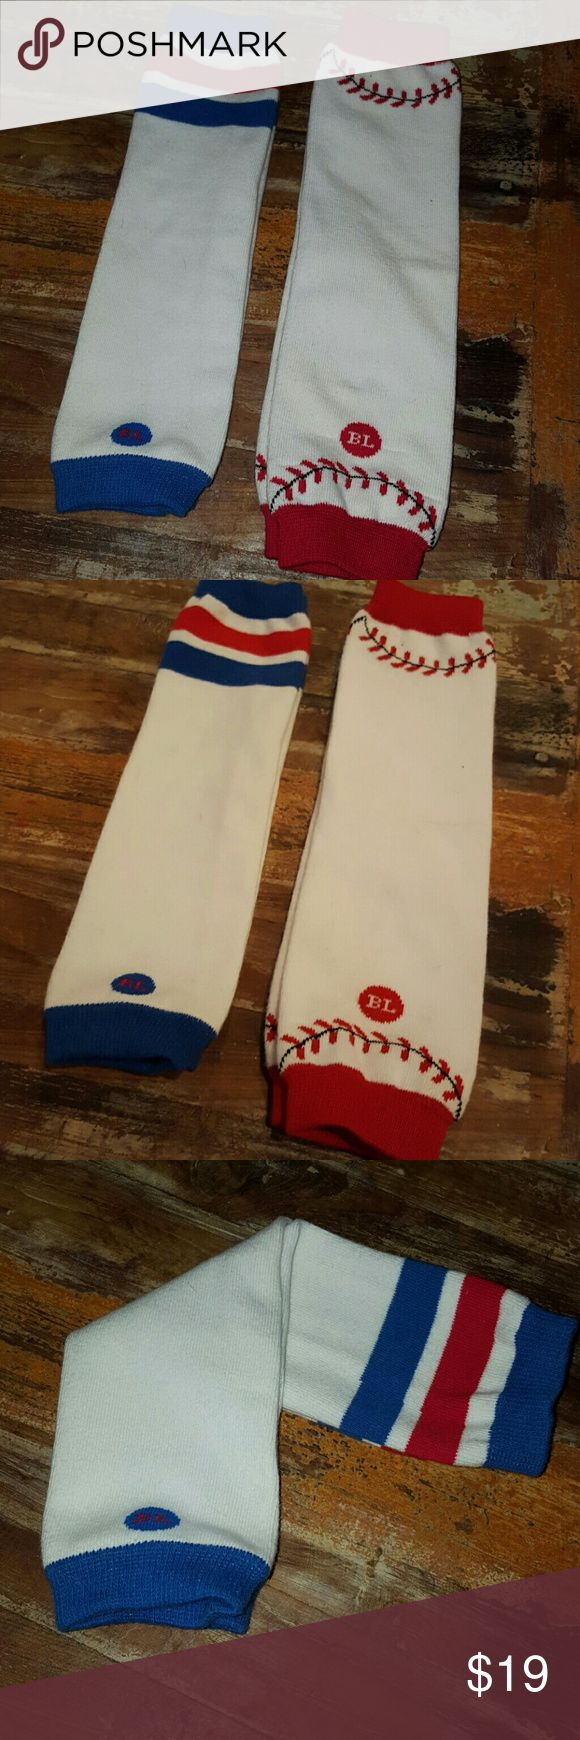 Infant/Toddler Legwarmers Two pairs of infant/toddler size legwarmers. BabyLeg brand! Both gently used but good condition. No stains! Red, white & blue striped pair and baseball pair. Retail for $16.99 each! Baby Leg Other